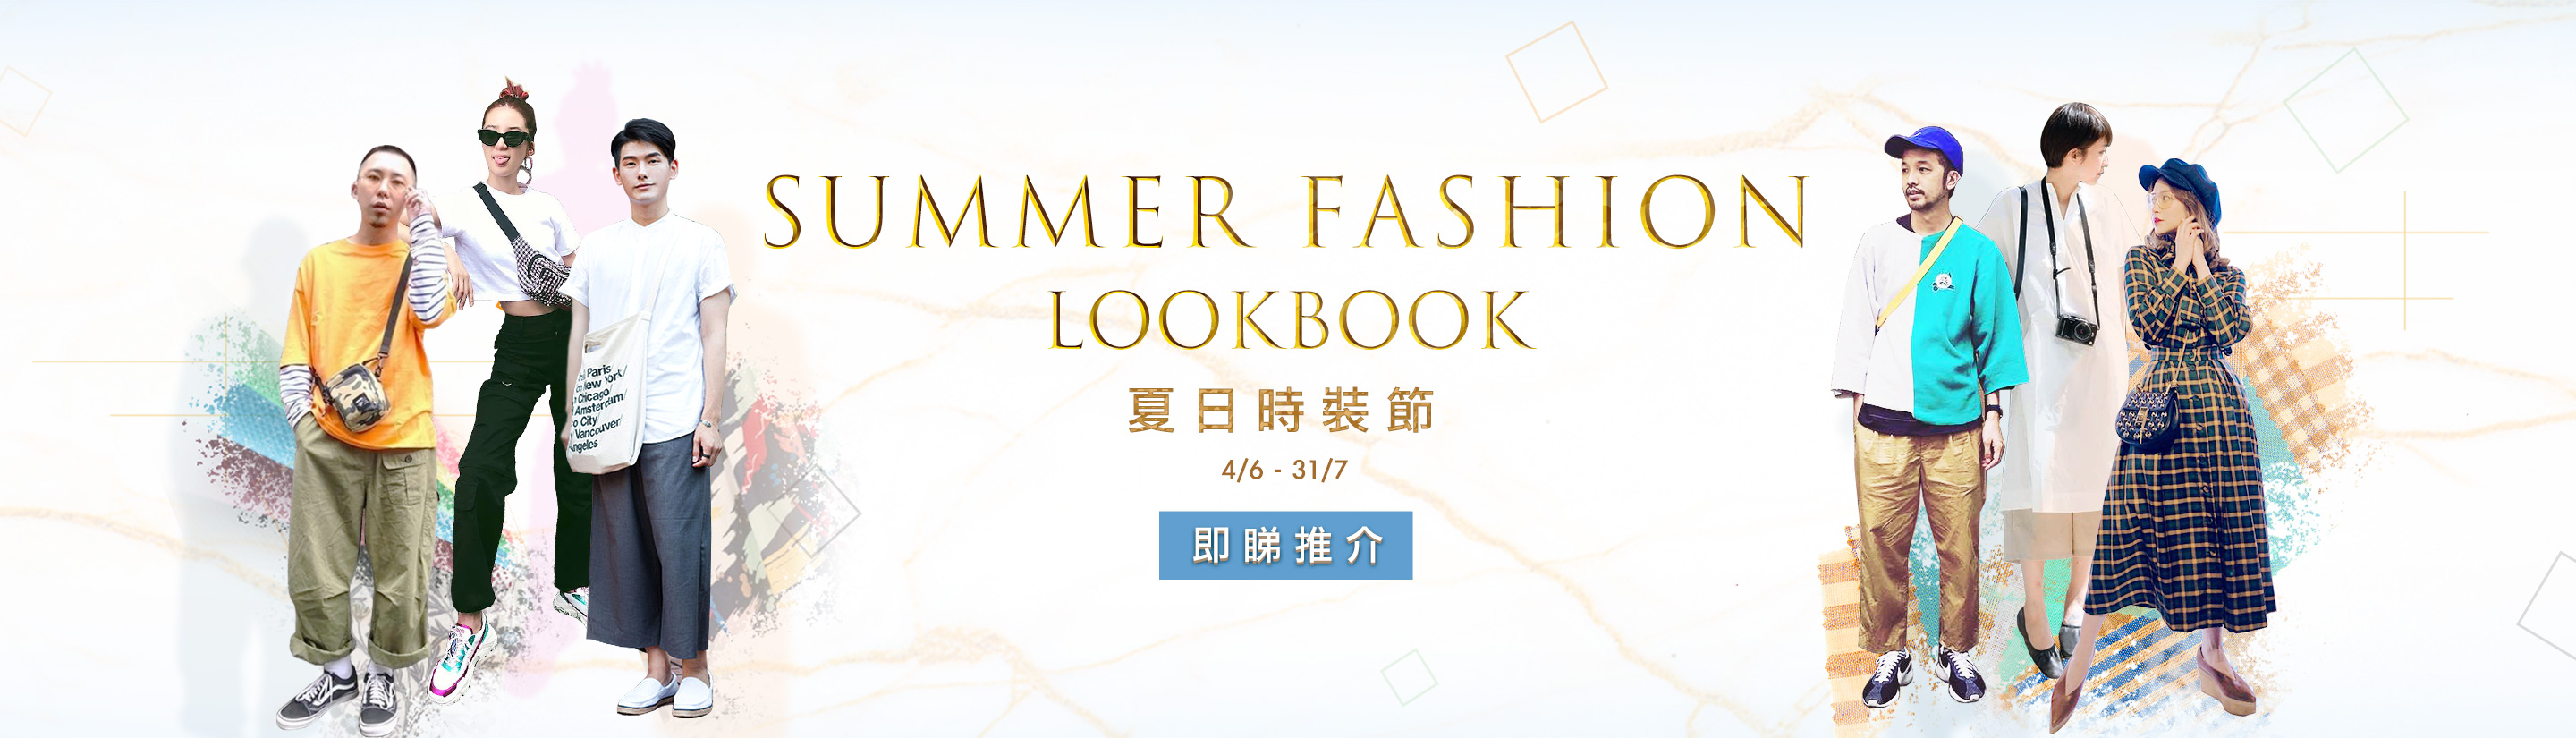 summerfashionlookbook